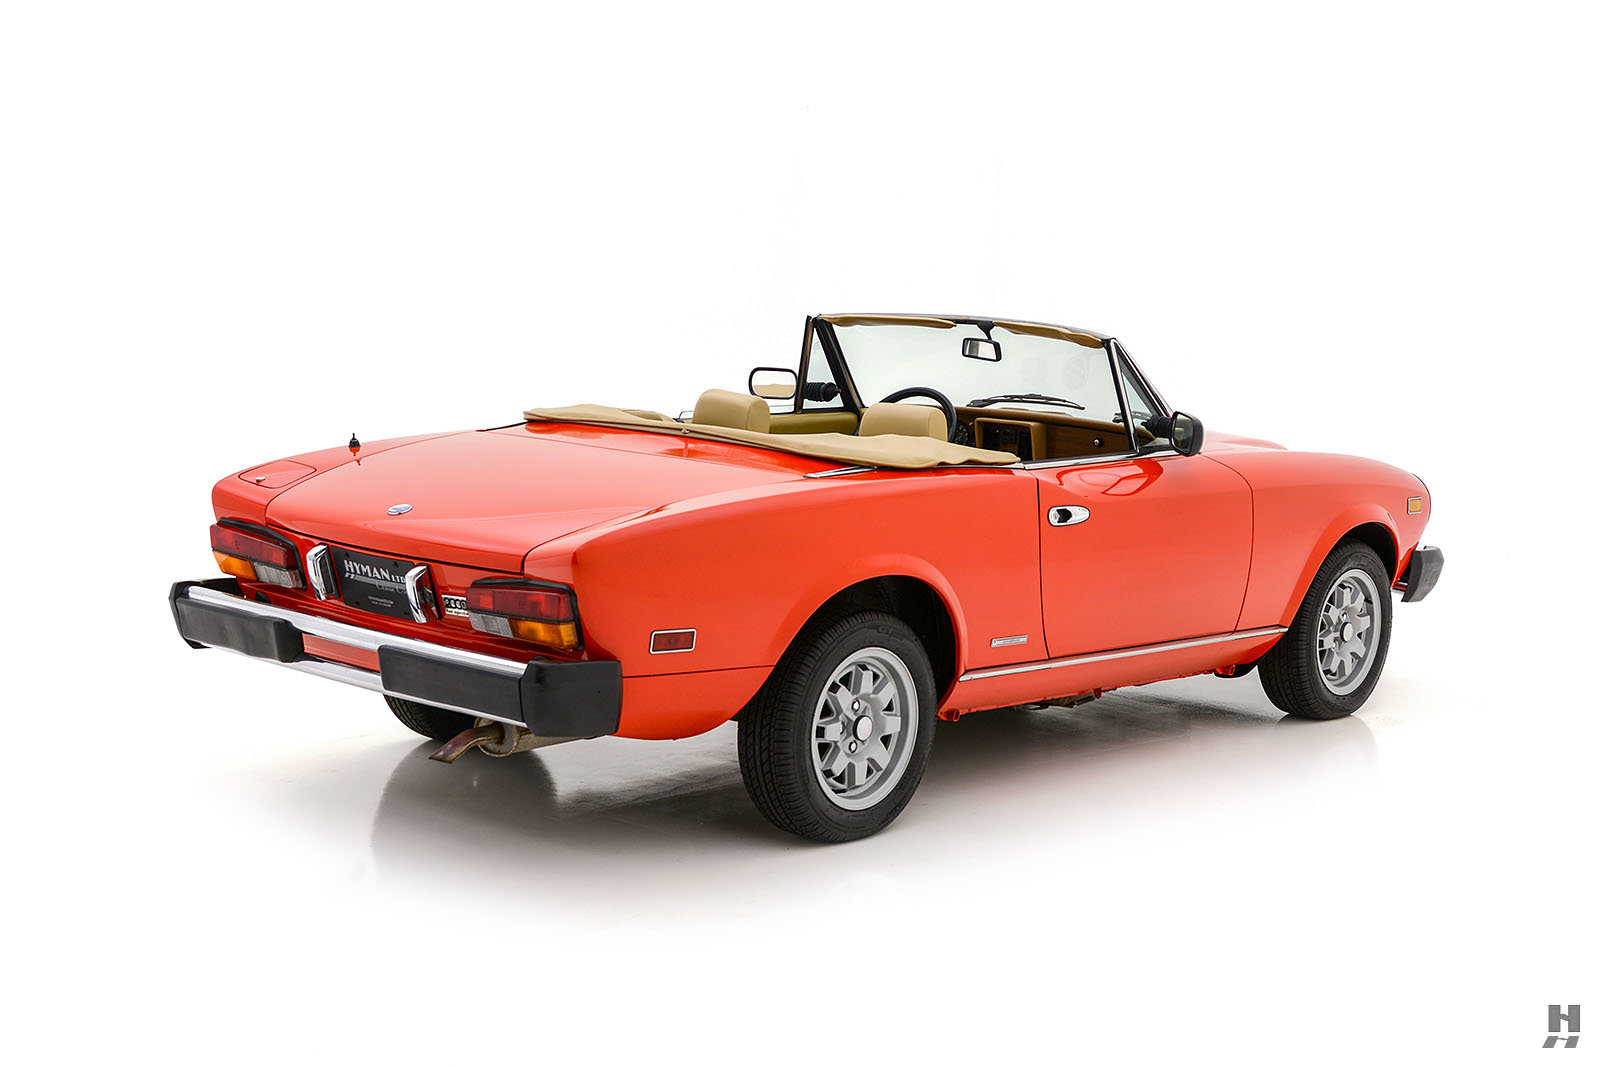 1984 PININFARINA SPIDER AZZURRA CABRIOLET For Sale (picture 5 of 6)